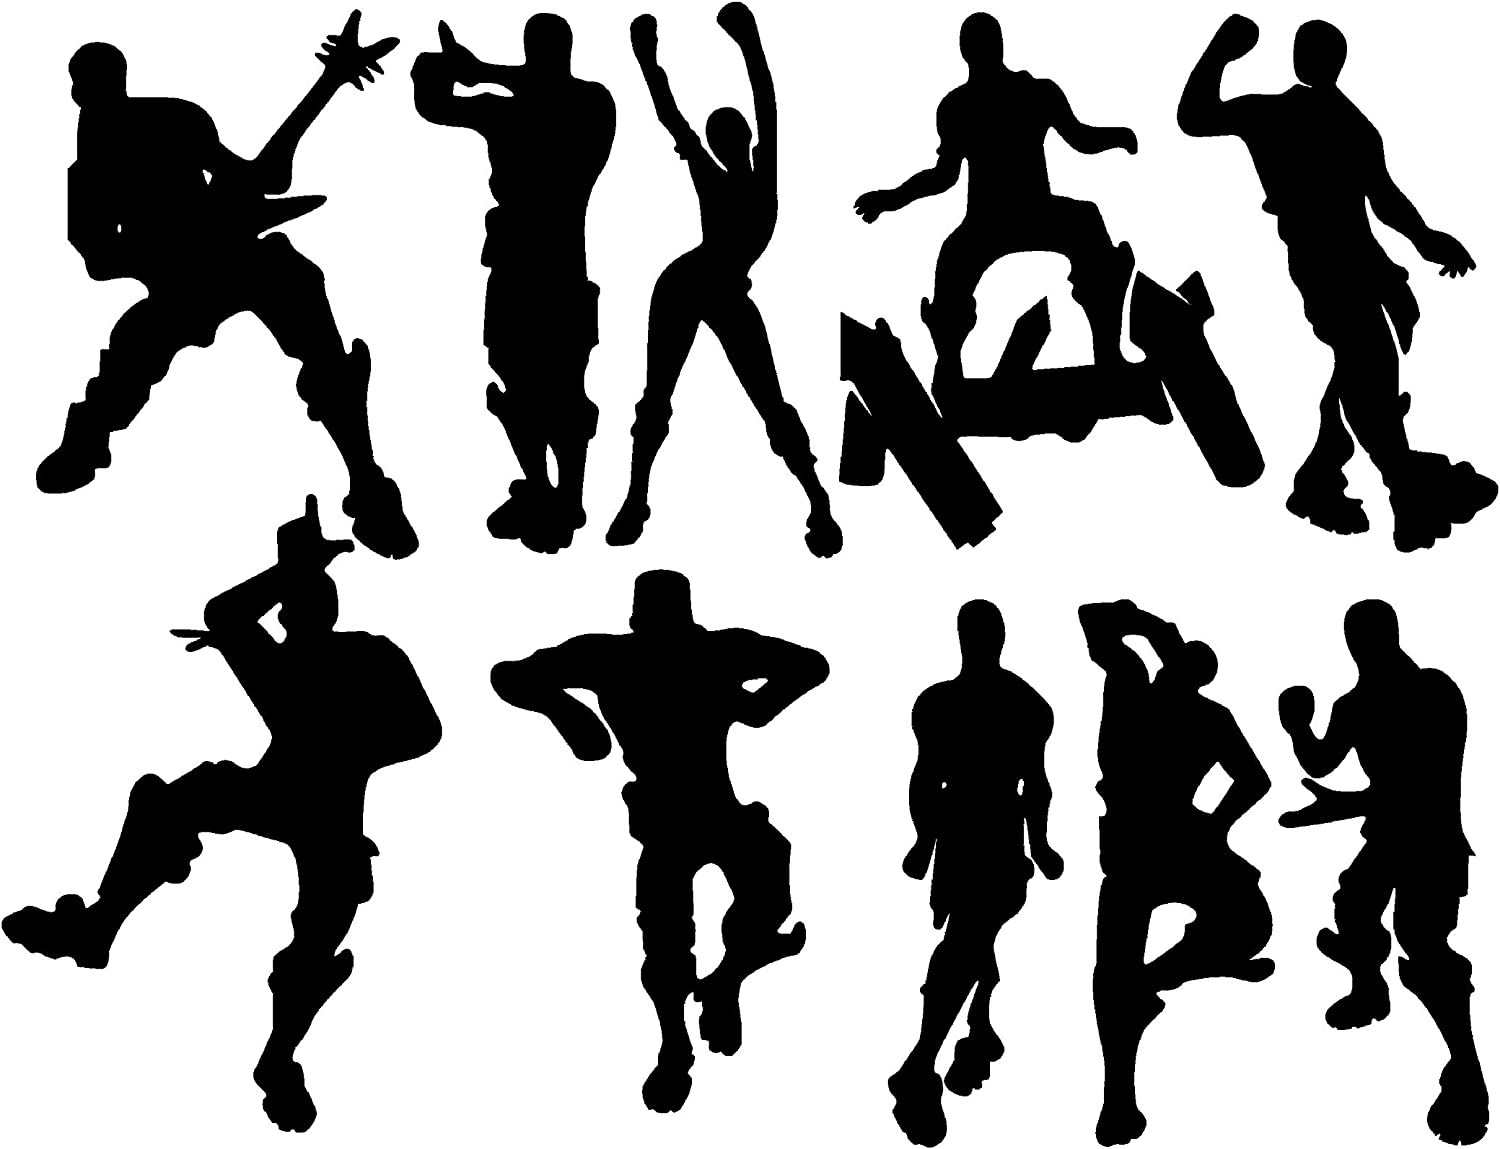 "LHKSER Game Wall Decal Wall Sticker Poster Floss Dancing Decal Nursery Boys Room Wall Vinyl Decal Game Stickers (Black)(23.6"" x 19.6"")"